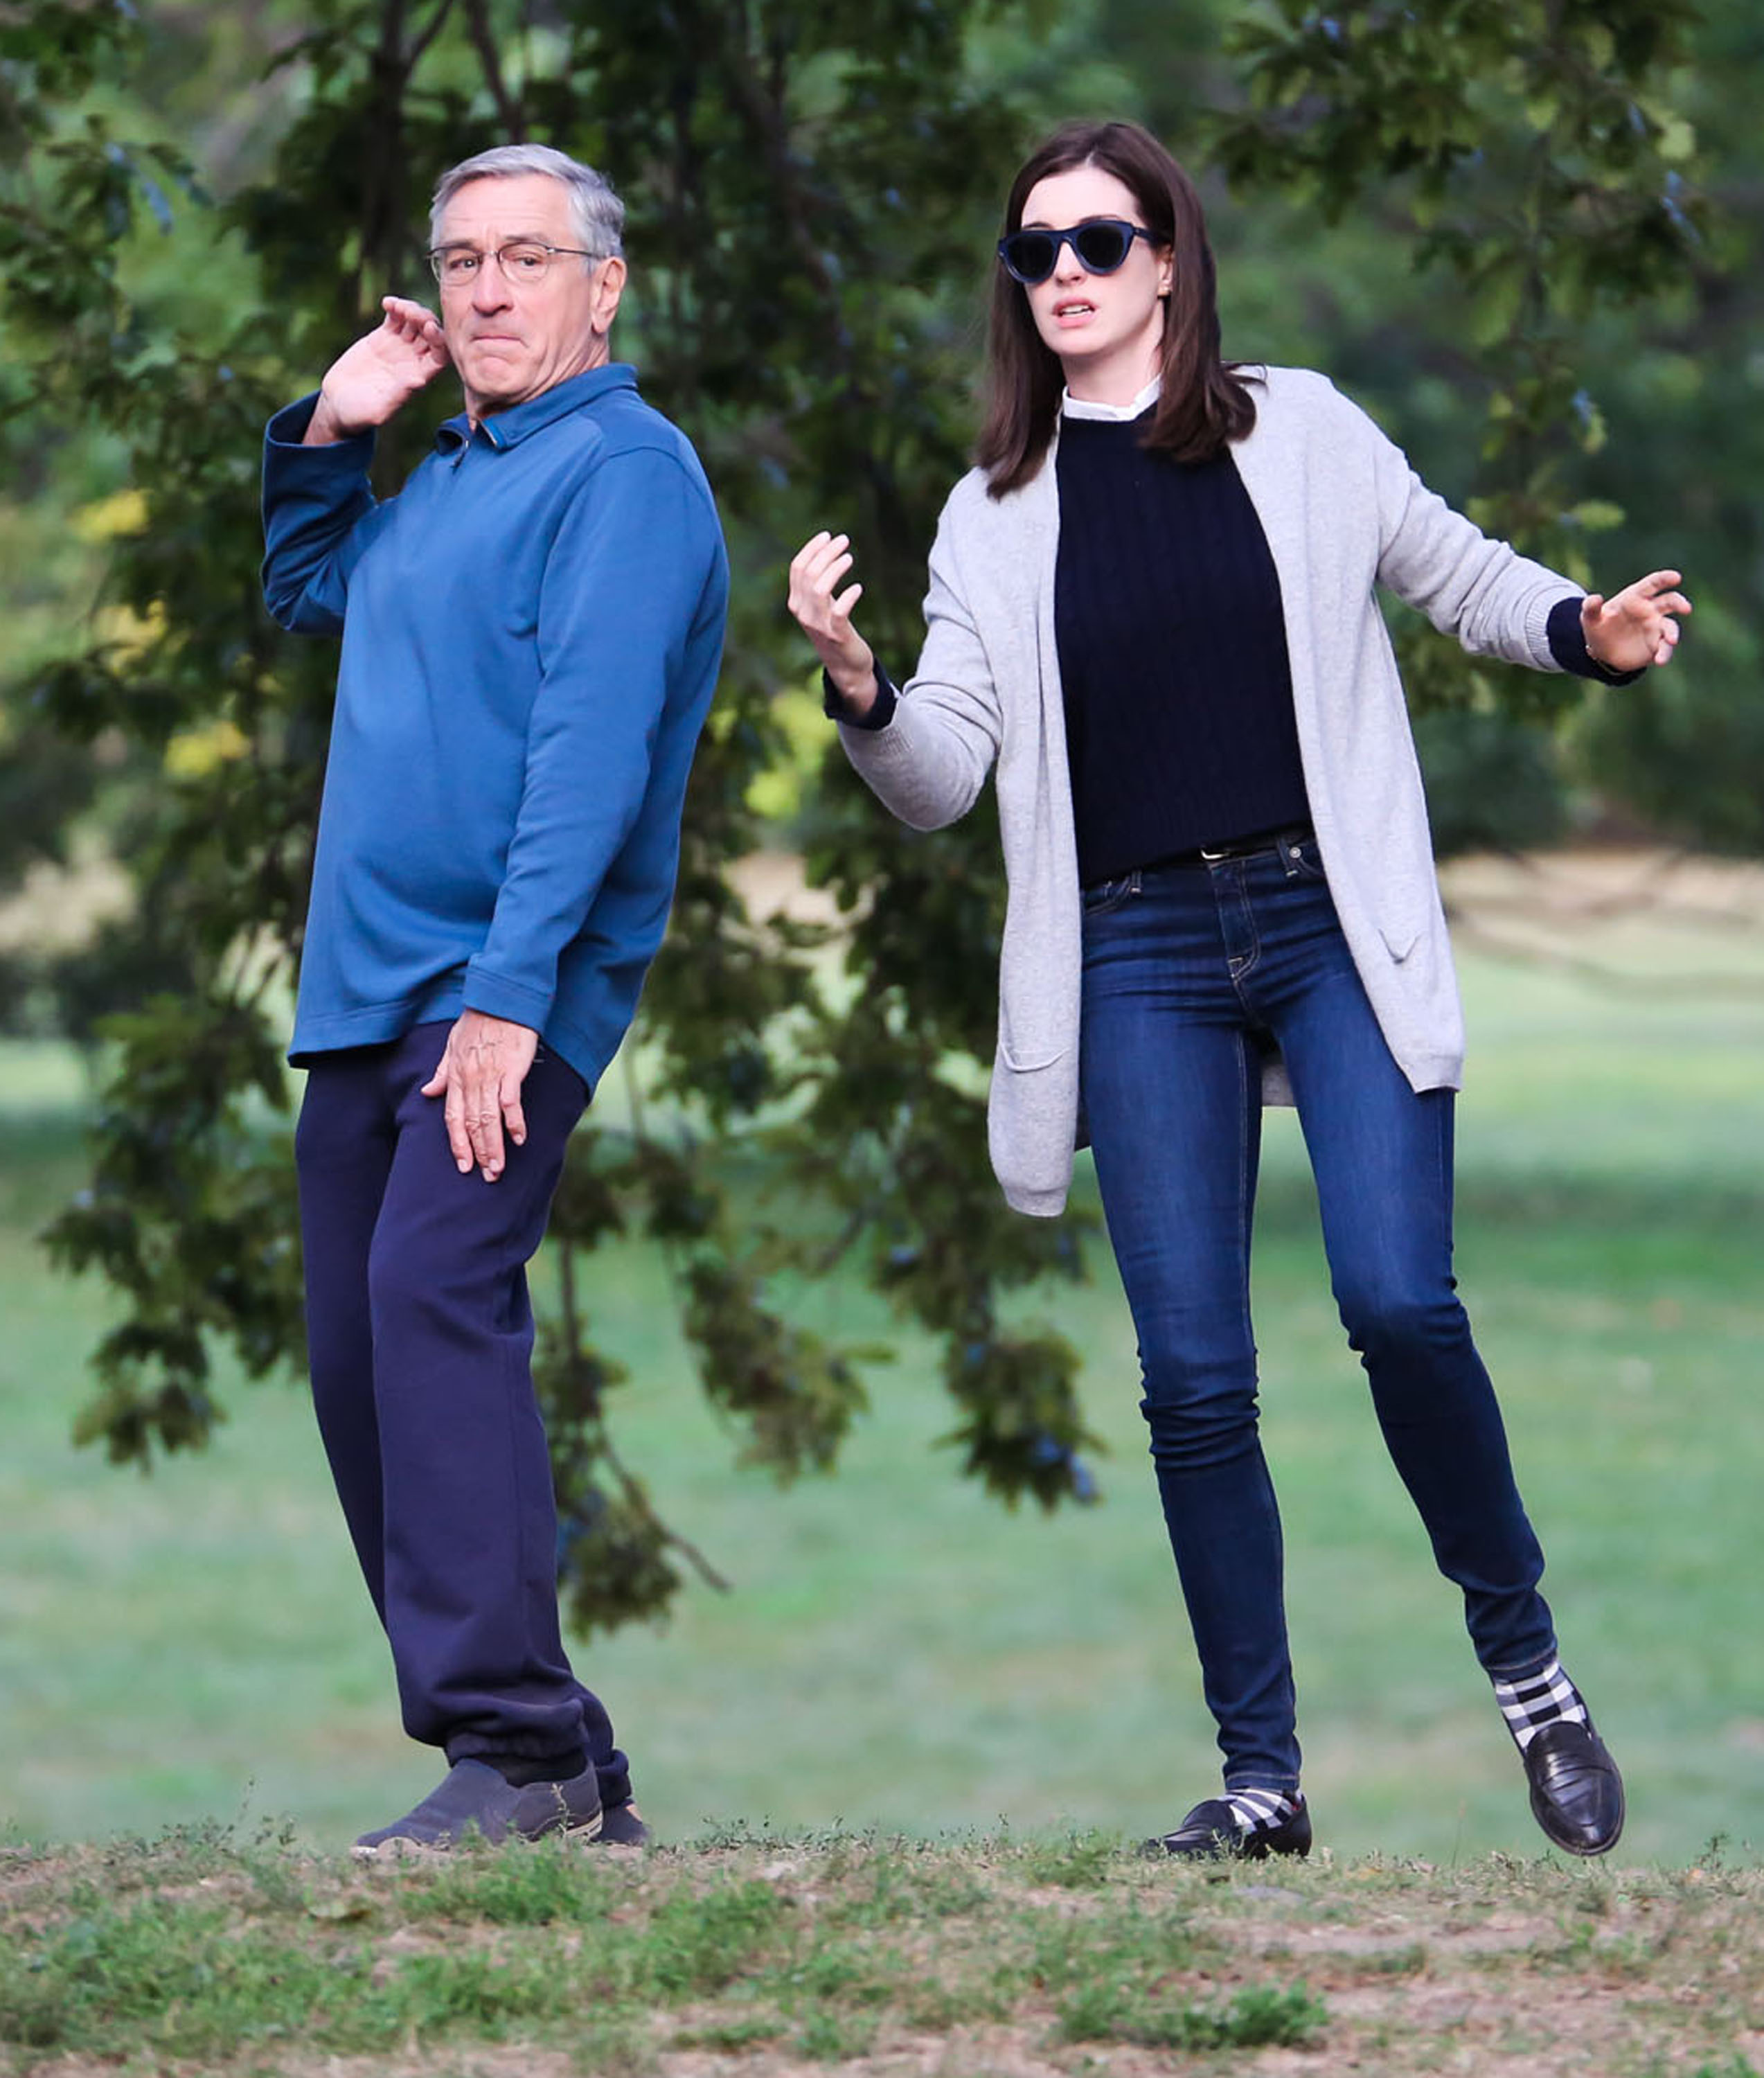 51527584 Actors Robert De Niro and Anne Hathaway doing Tai Chi on the set of 'The Intern' in New York City, New York on September 9, 2014. Both actors looked completely lost during the scene. FameFlynet, Inc - Beverly Hills, CA, USA - +1 (818) 307-4813